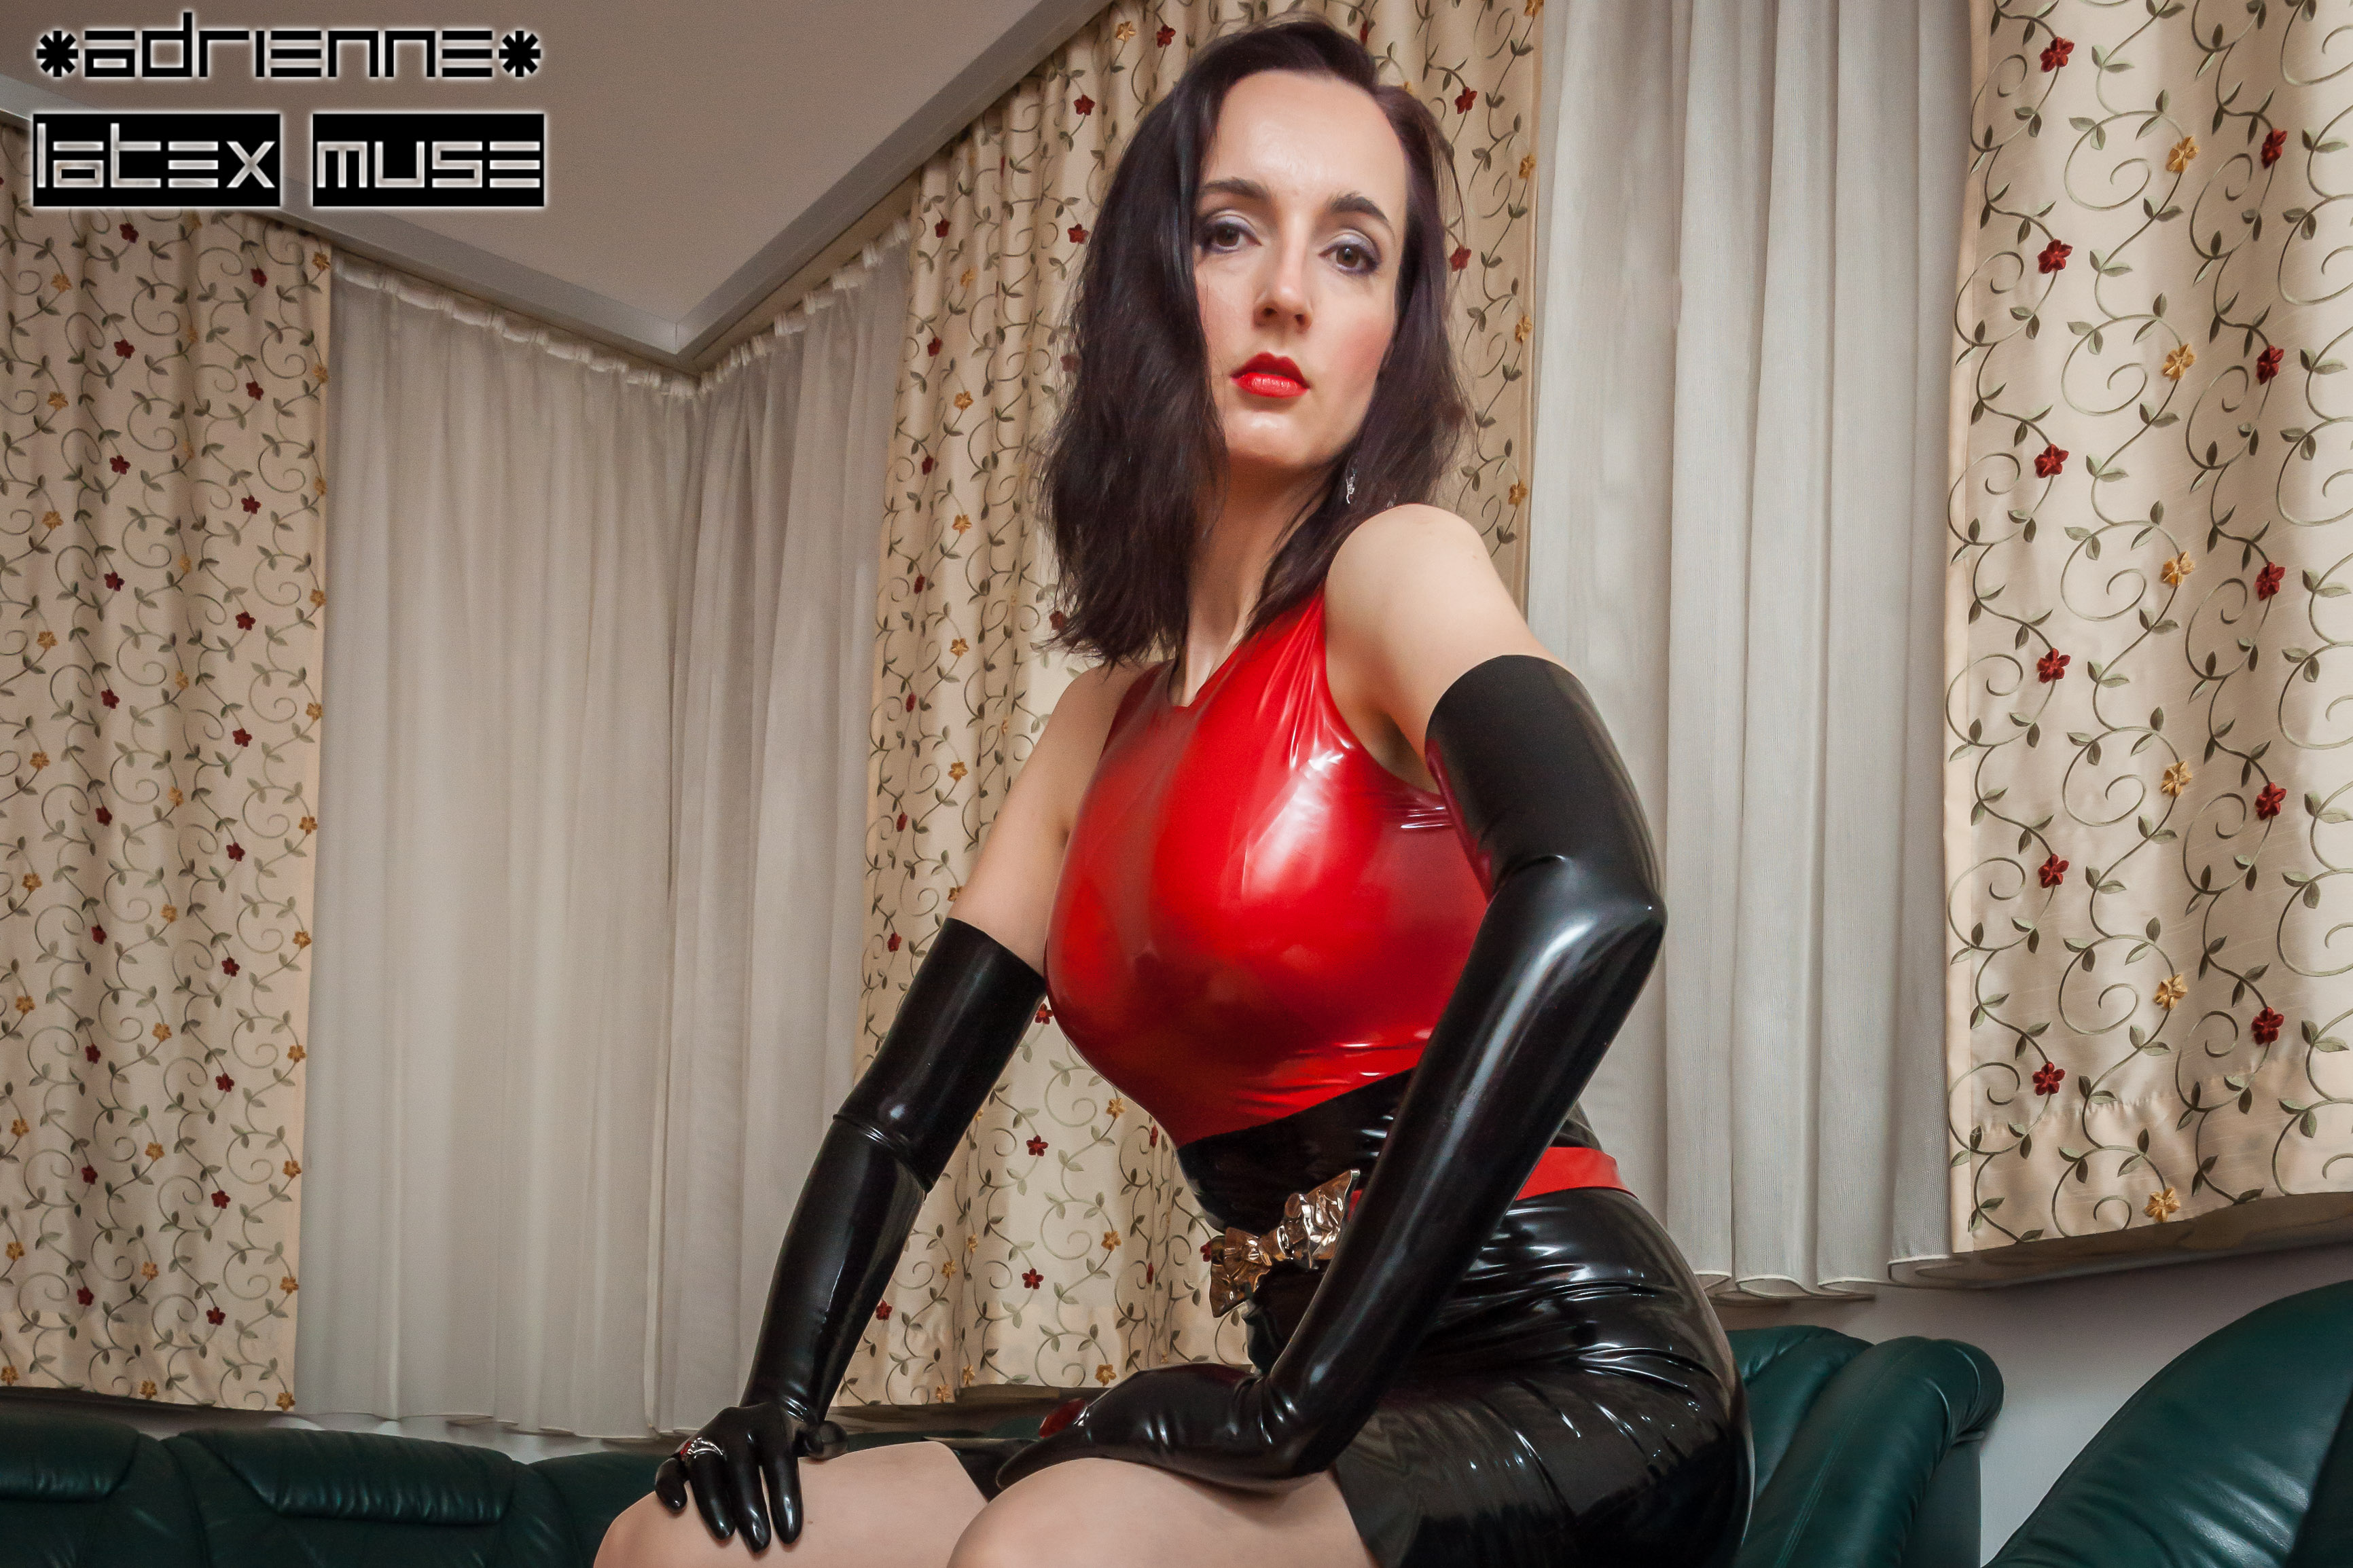 2017 - Latex lady with red ring